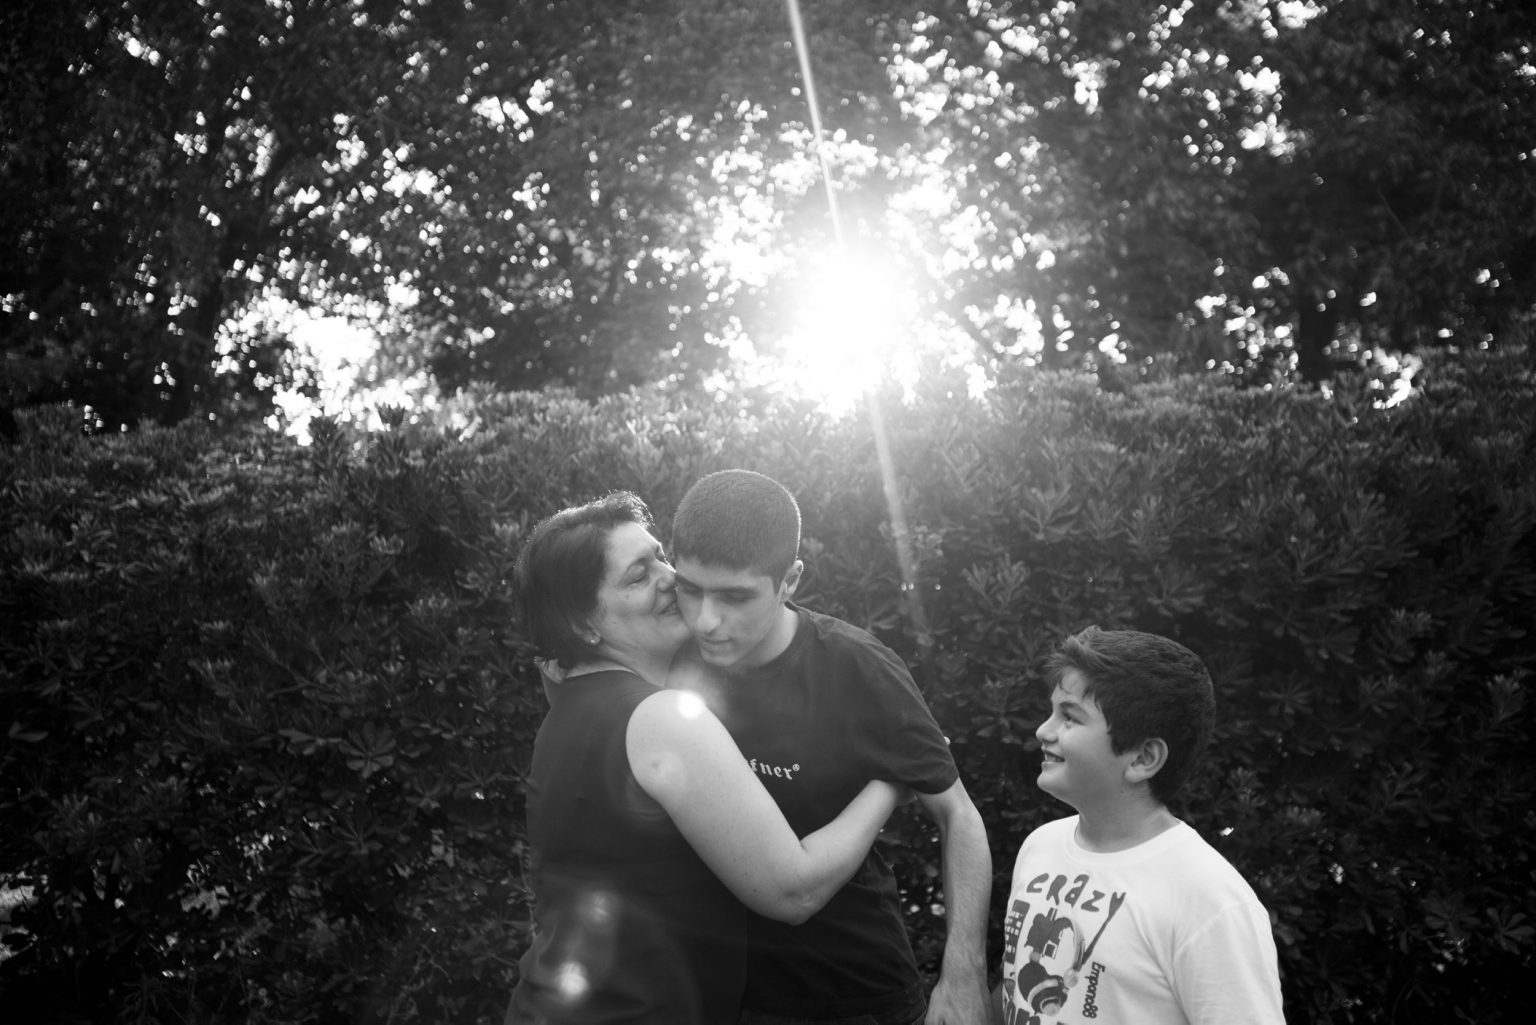 Antonella, the mother of the autistic twins, shares a moment of tenderness with Gennaro. Flavio the third child of the couple looks at them happily. Aversa, Caserta, Italy, 2015